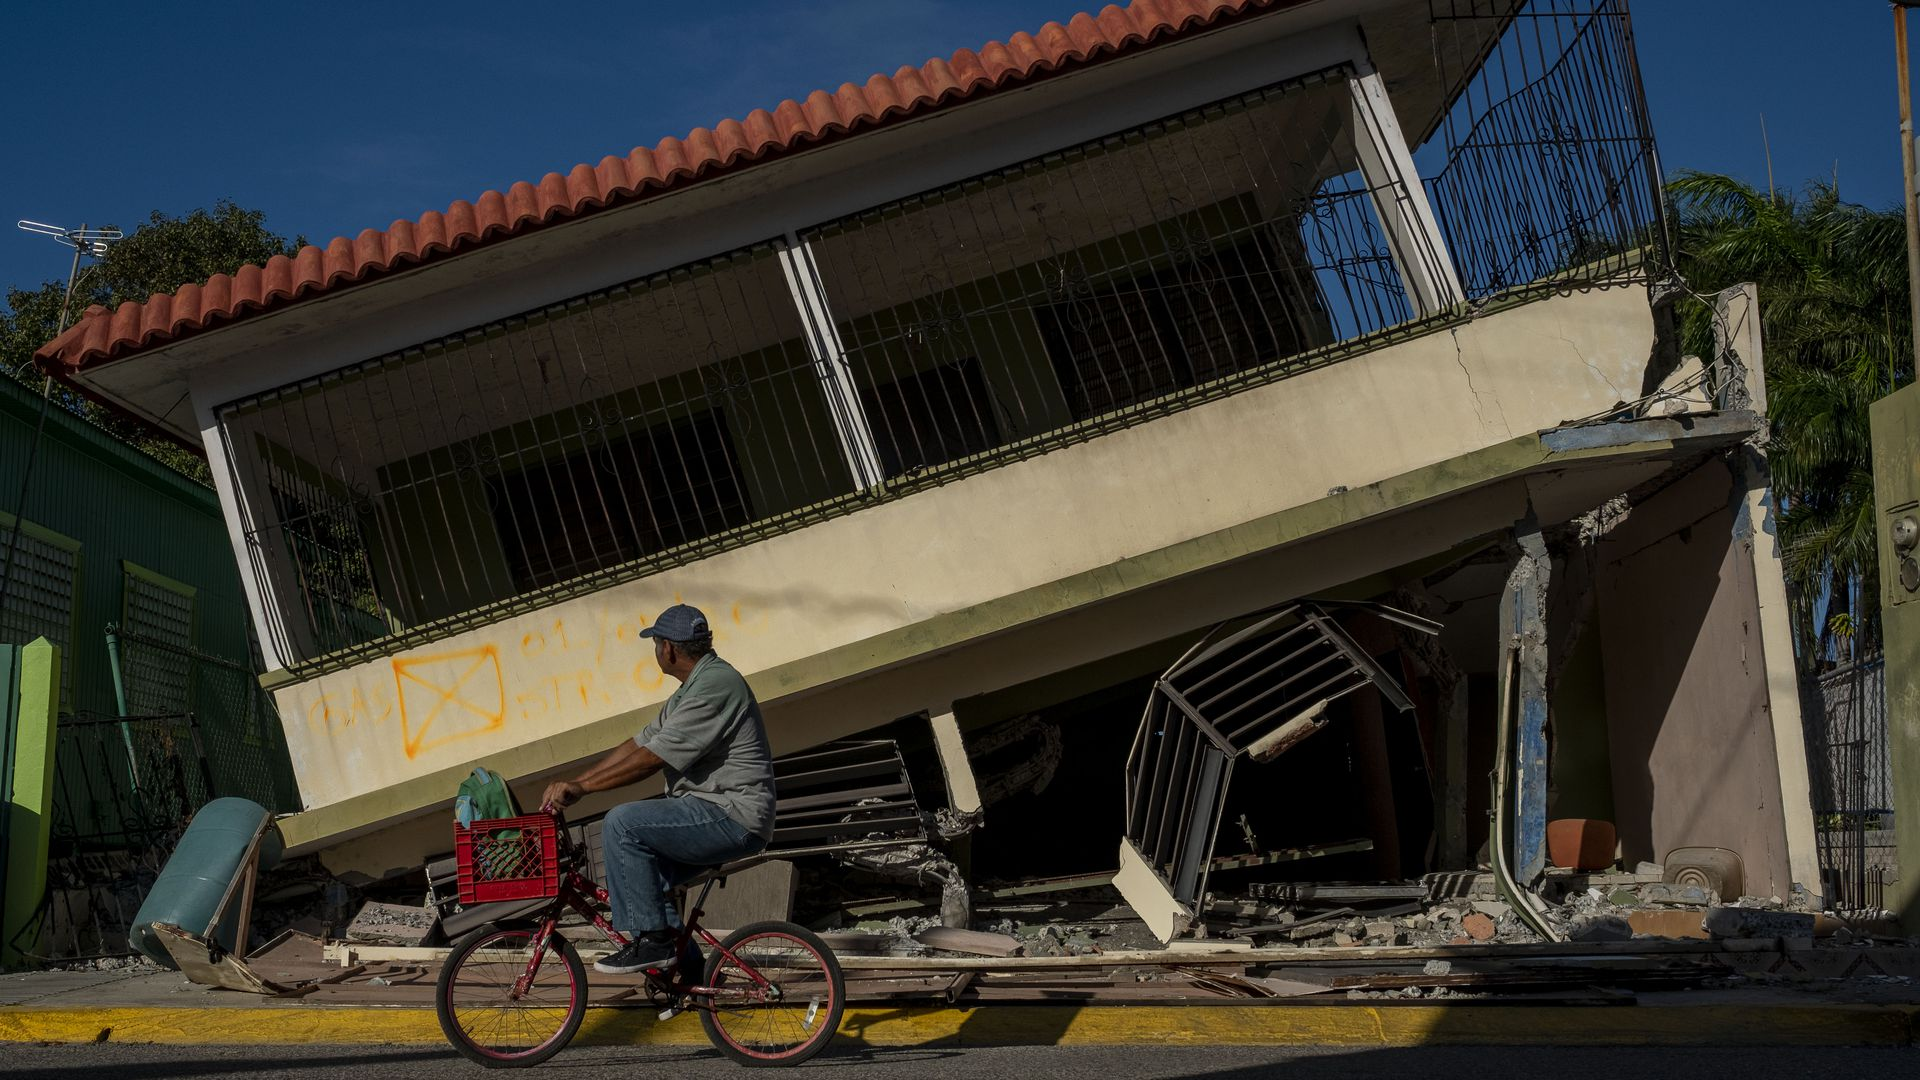 In this image, a Puerto Rican man bikes past a lopsided building.